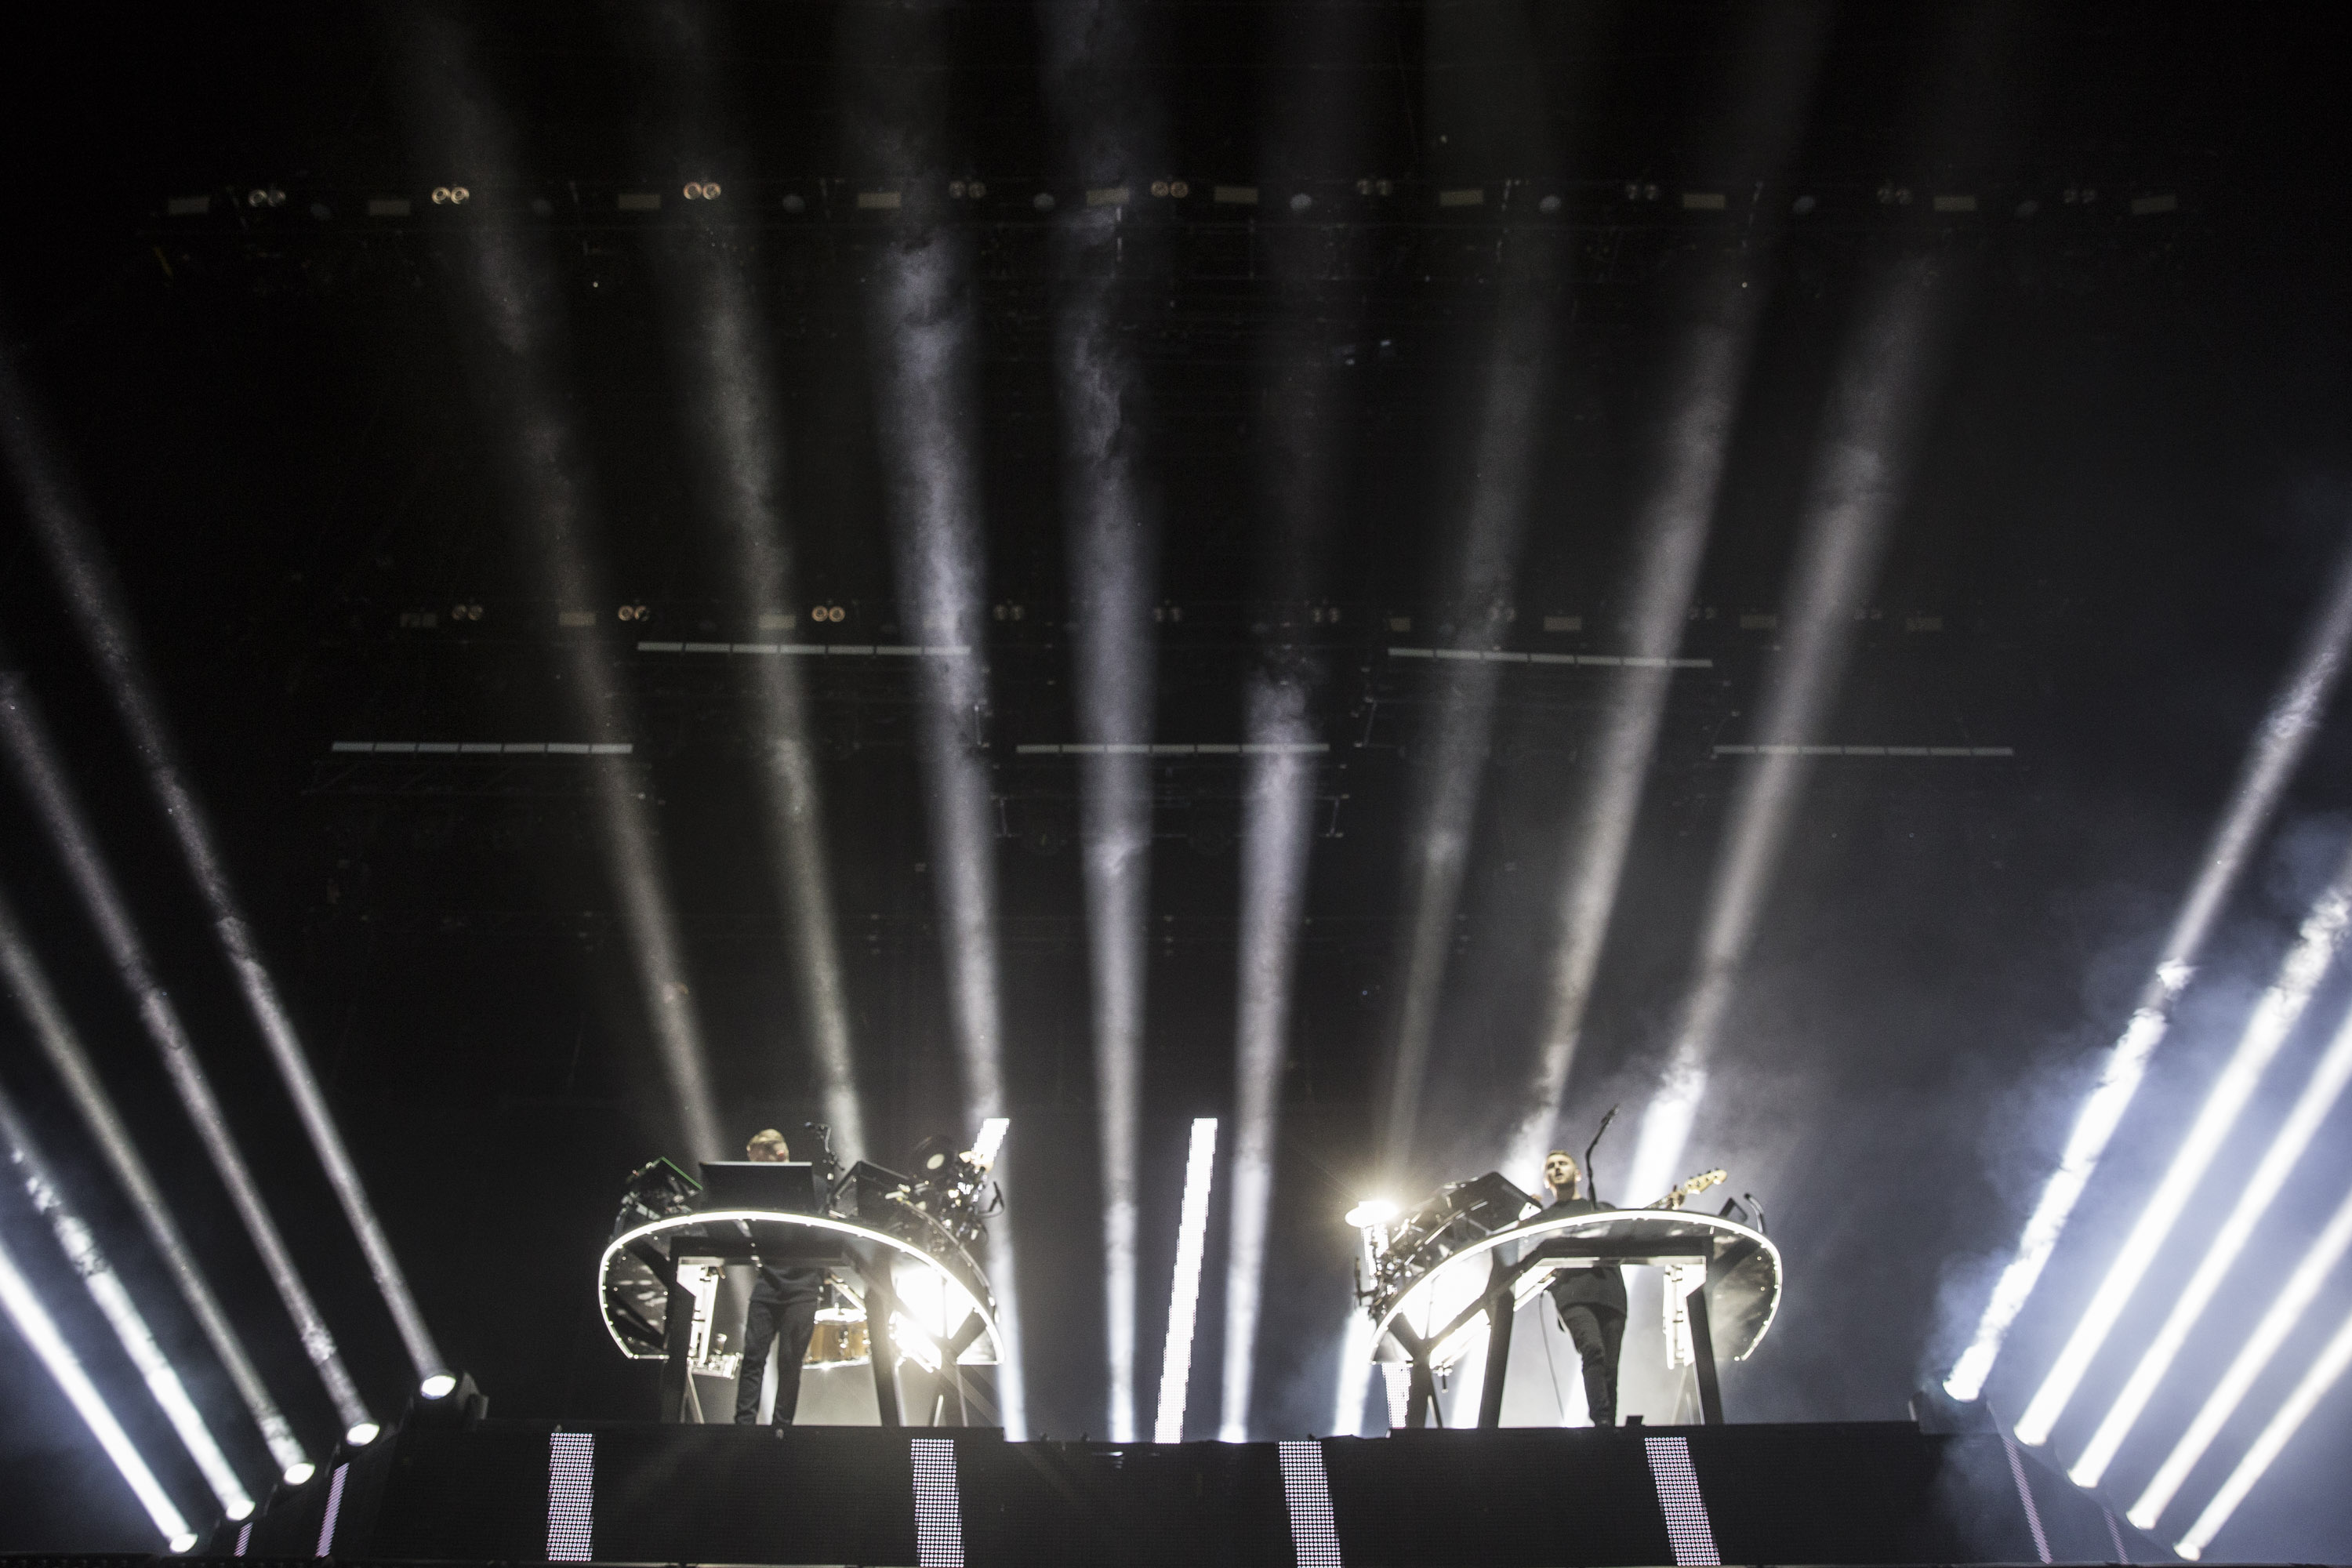 Disclosure return with another new track - hear 'Where Angels Fear To Tread'